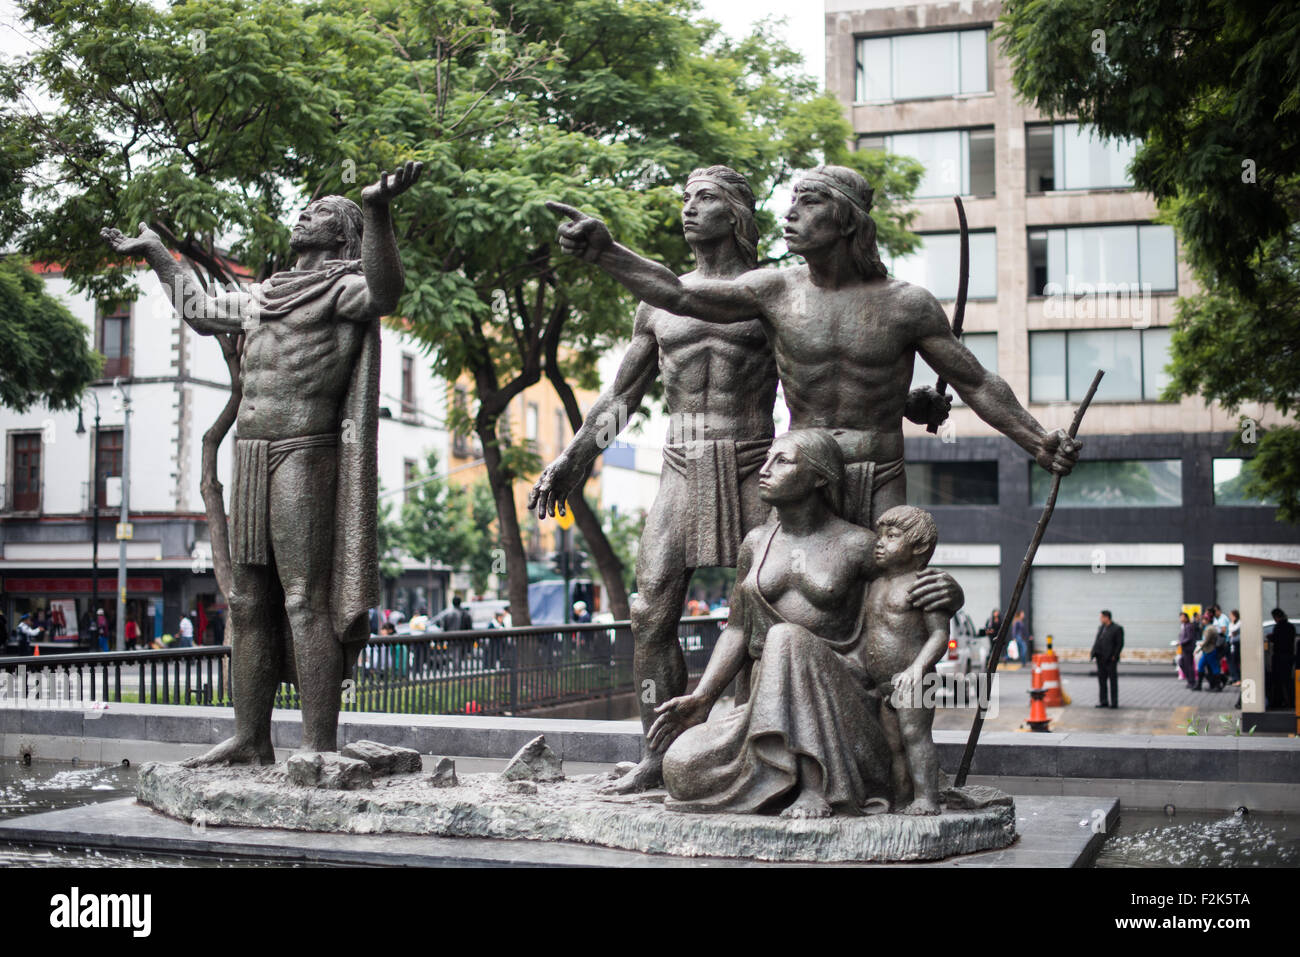 A statue of a set of pre-colonial figures in Centro Historico, Mexico City. - Stock Image